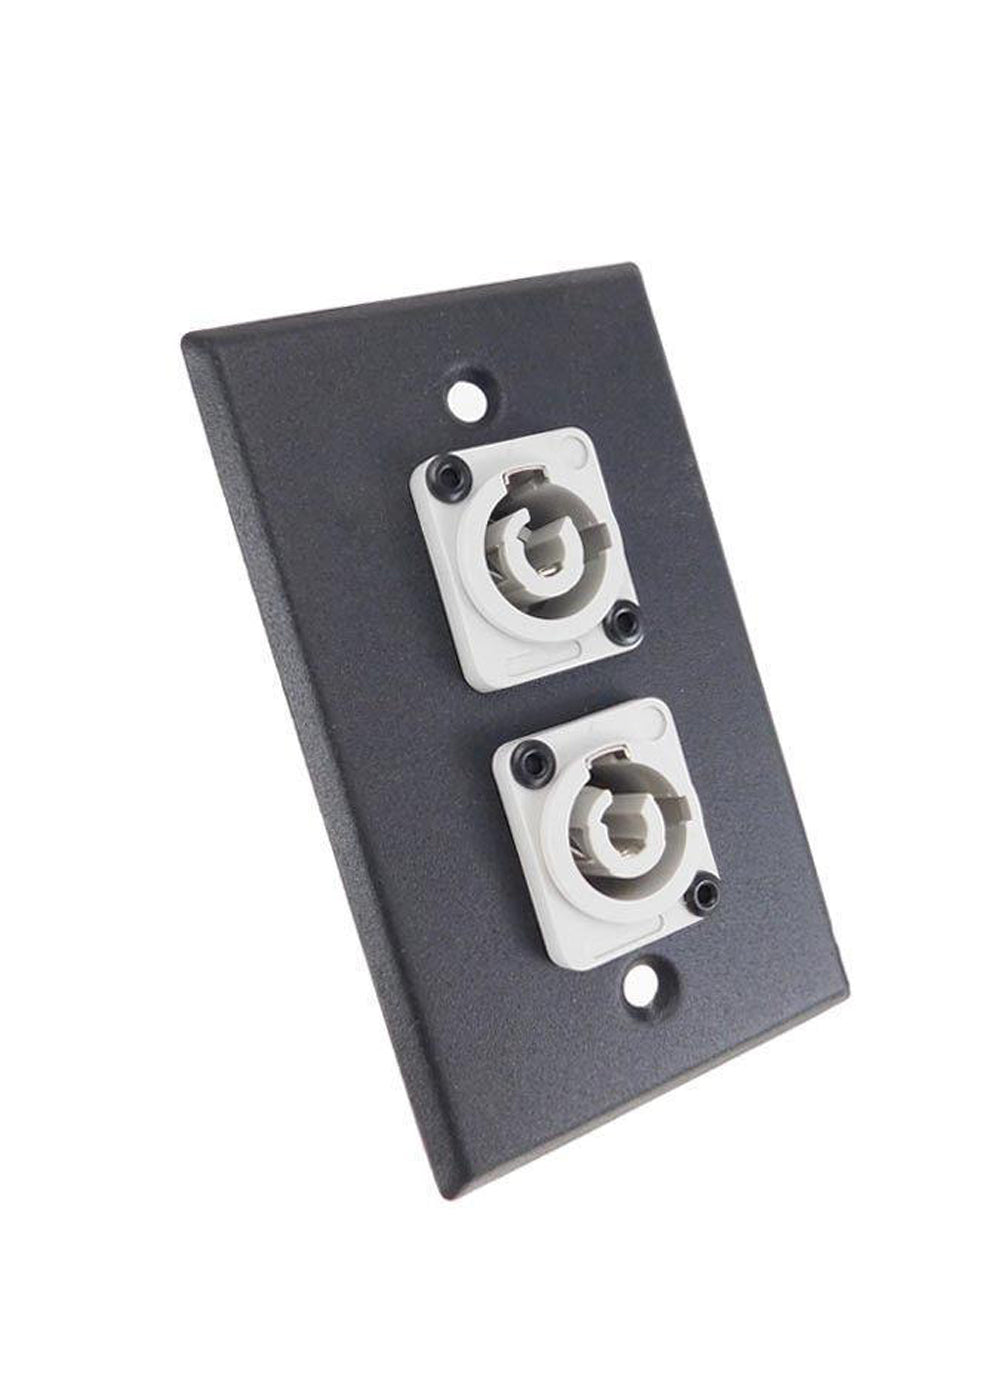 ProCraft Black Wall Plate  2 Power Out Gray AC Jacks, Mates w/ Neutrik Powercon